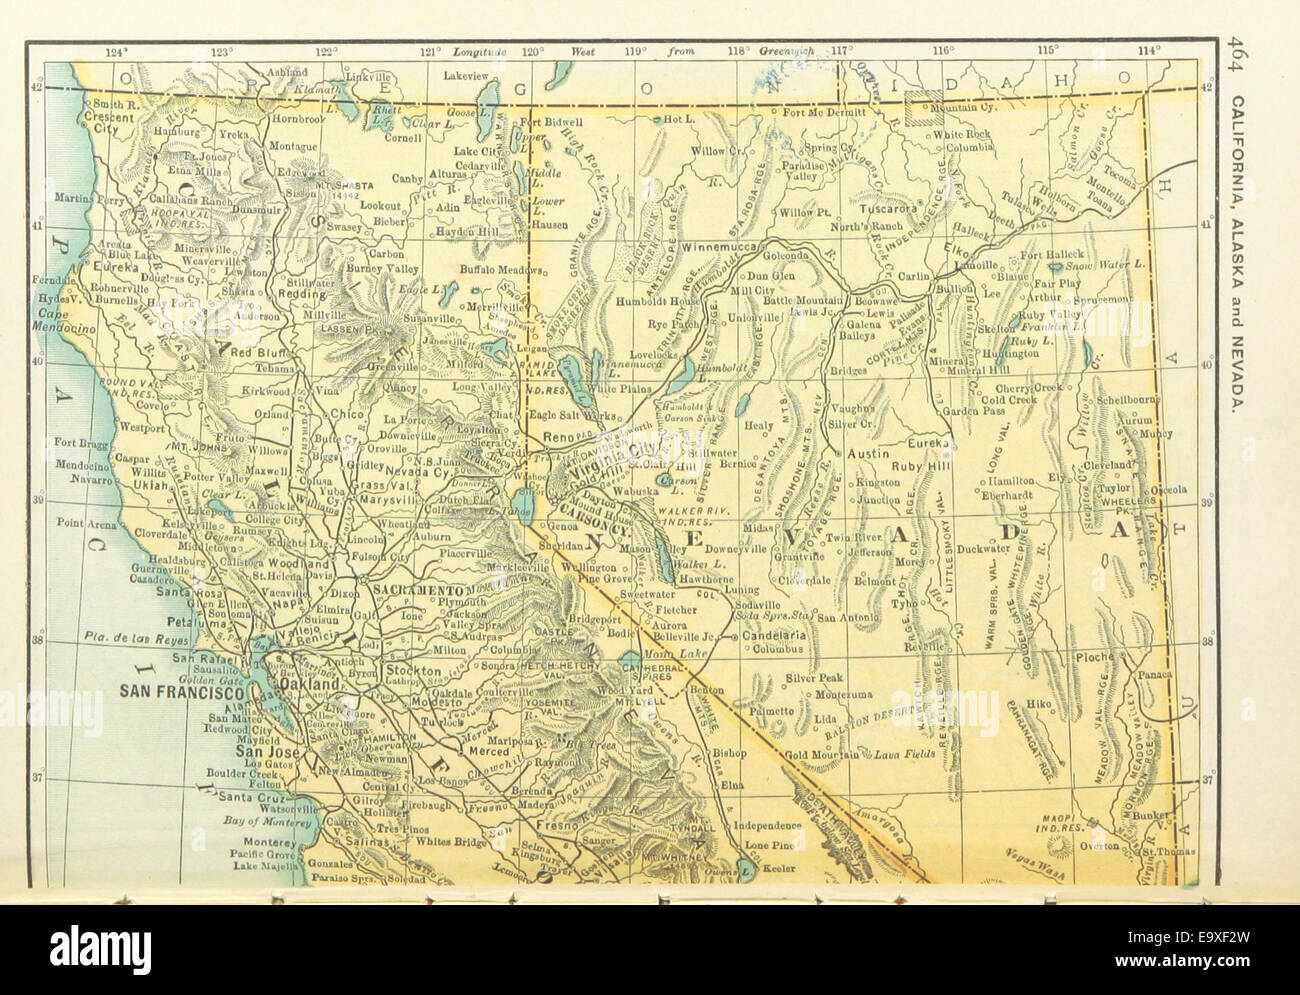 US-MAPS(1891) p466 - MAP OF CALIFORNIA, NEVADA AND ALASKA (l ...